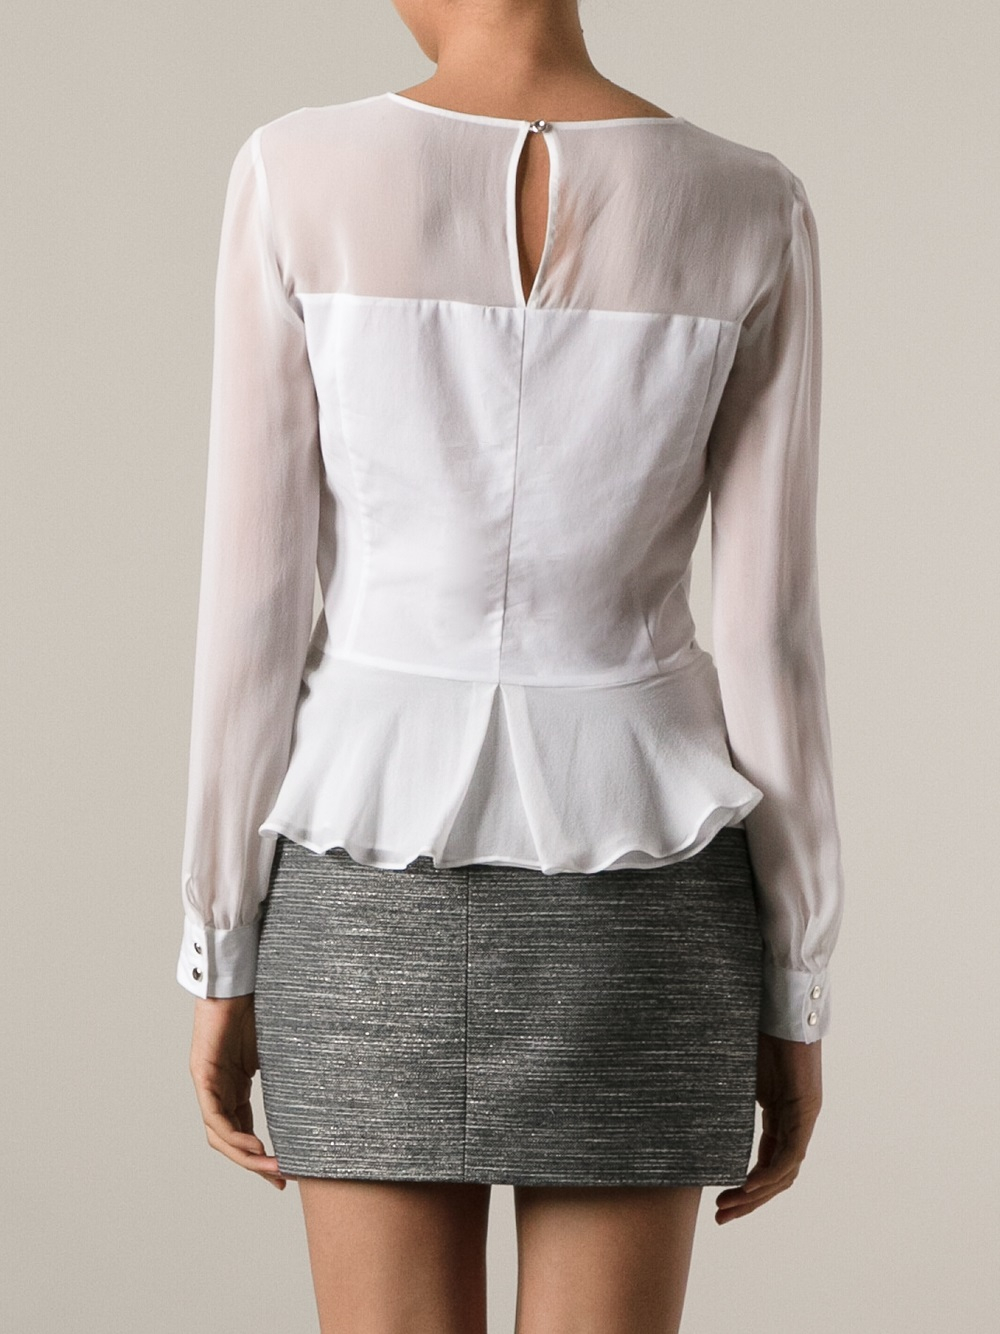 White Long Sleeve Shirt For Women